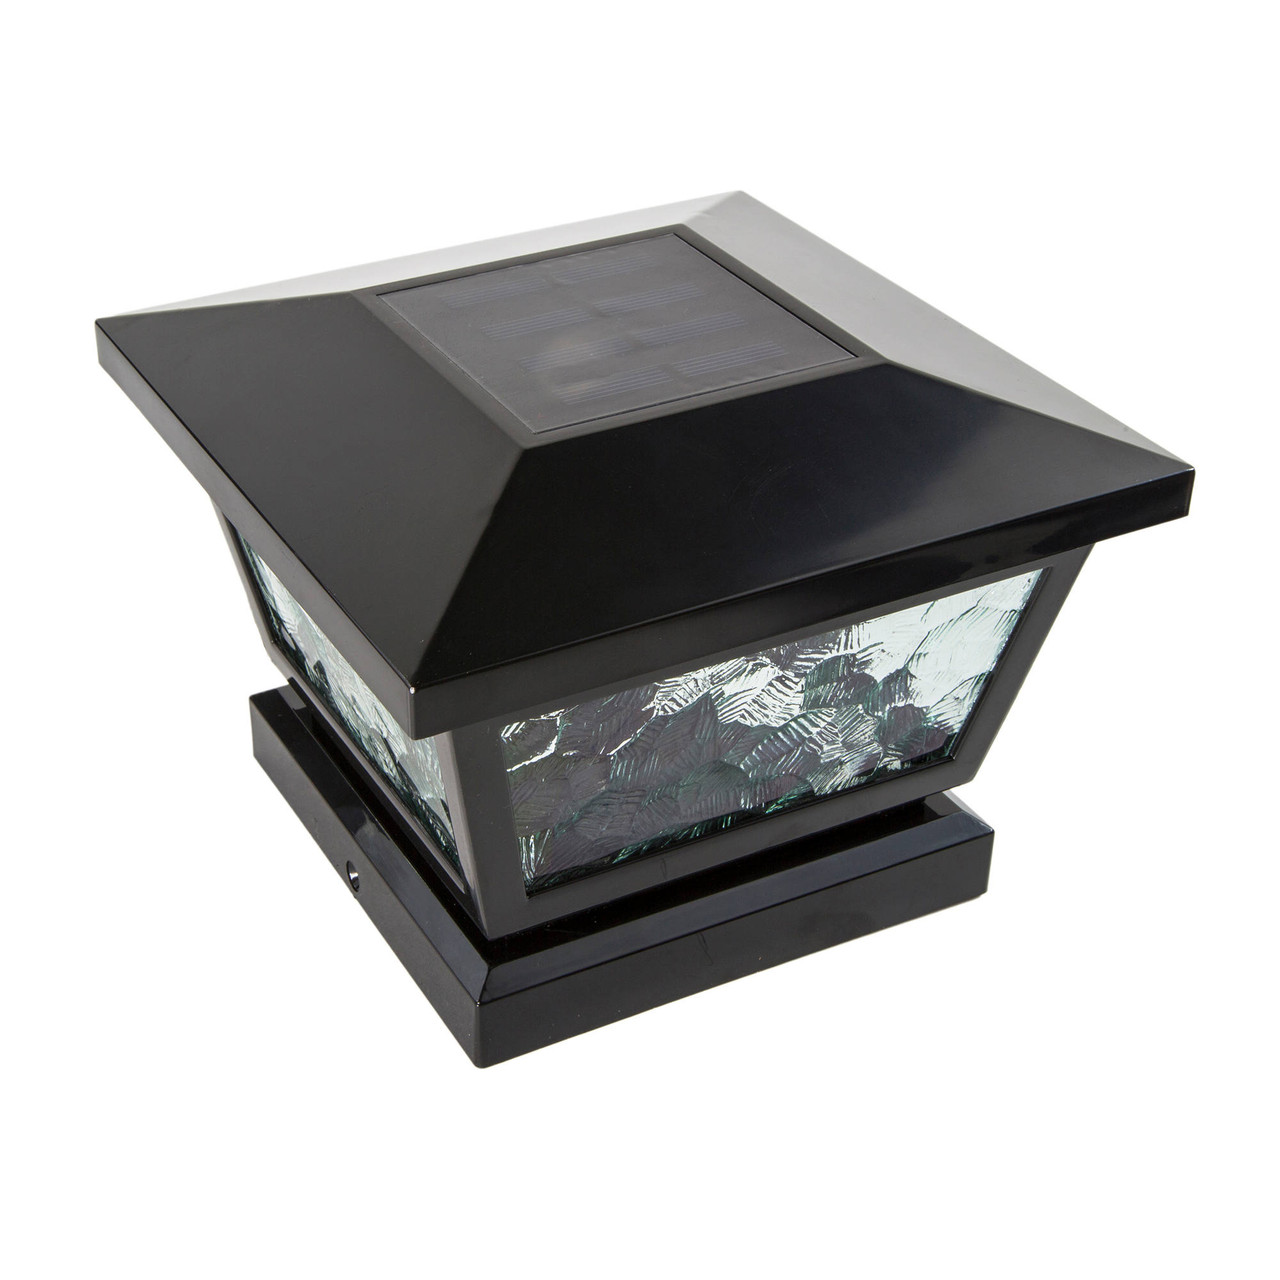 Black Fairmont Solar Light for Posts or Walls from Classy Caps